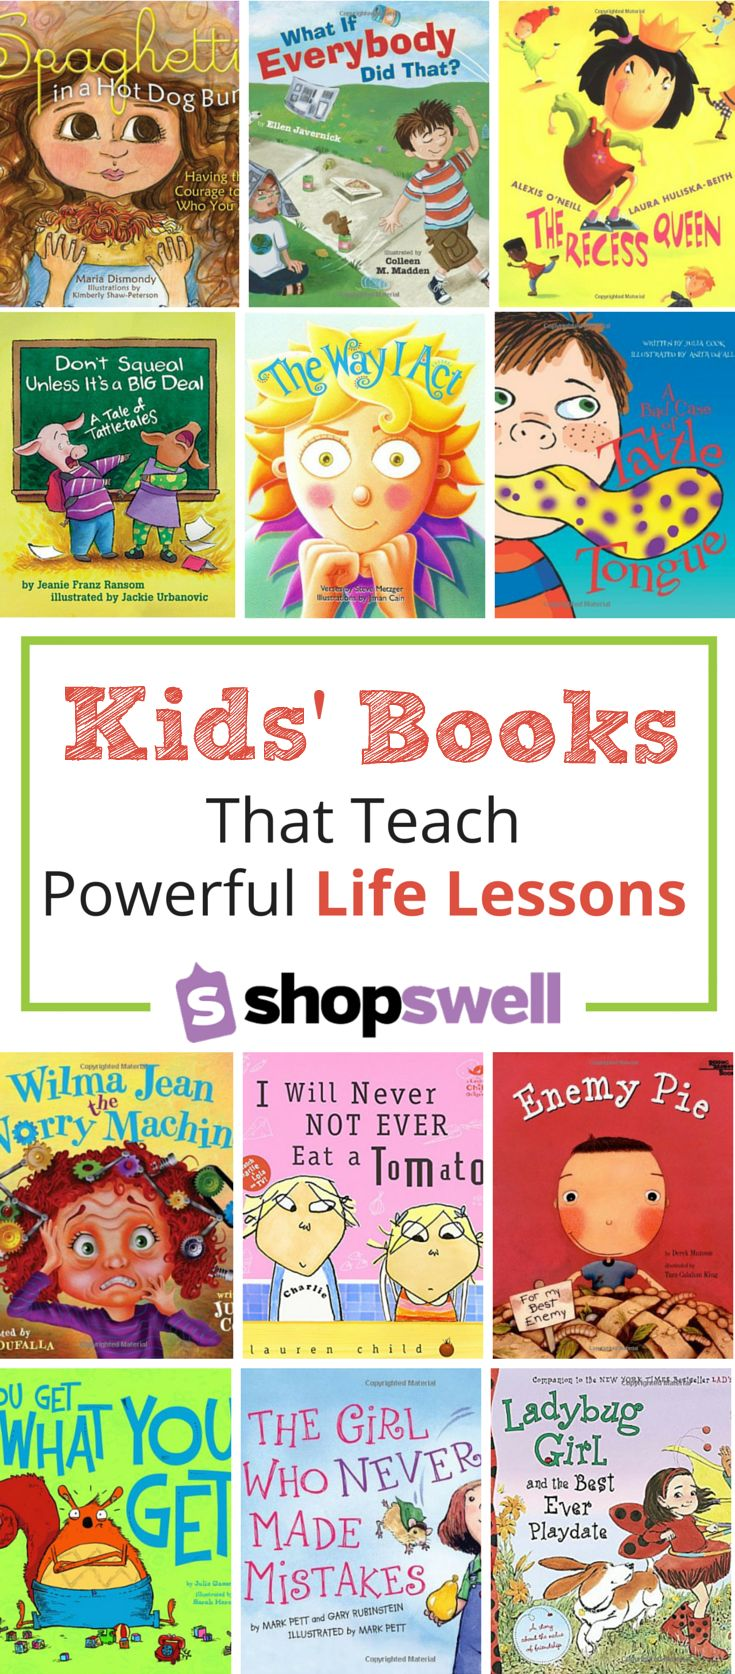 Kids' Picture Books that Teach Powerful Life Lessons - from bullying to picky eaters, these books cover a wide range of behaviors and concepts to work through with kids.